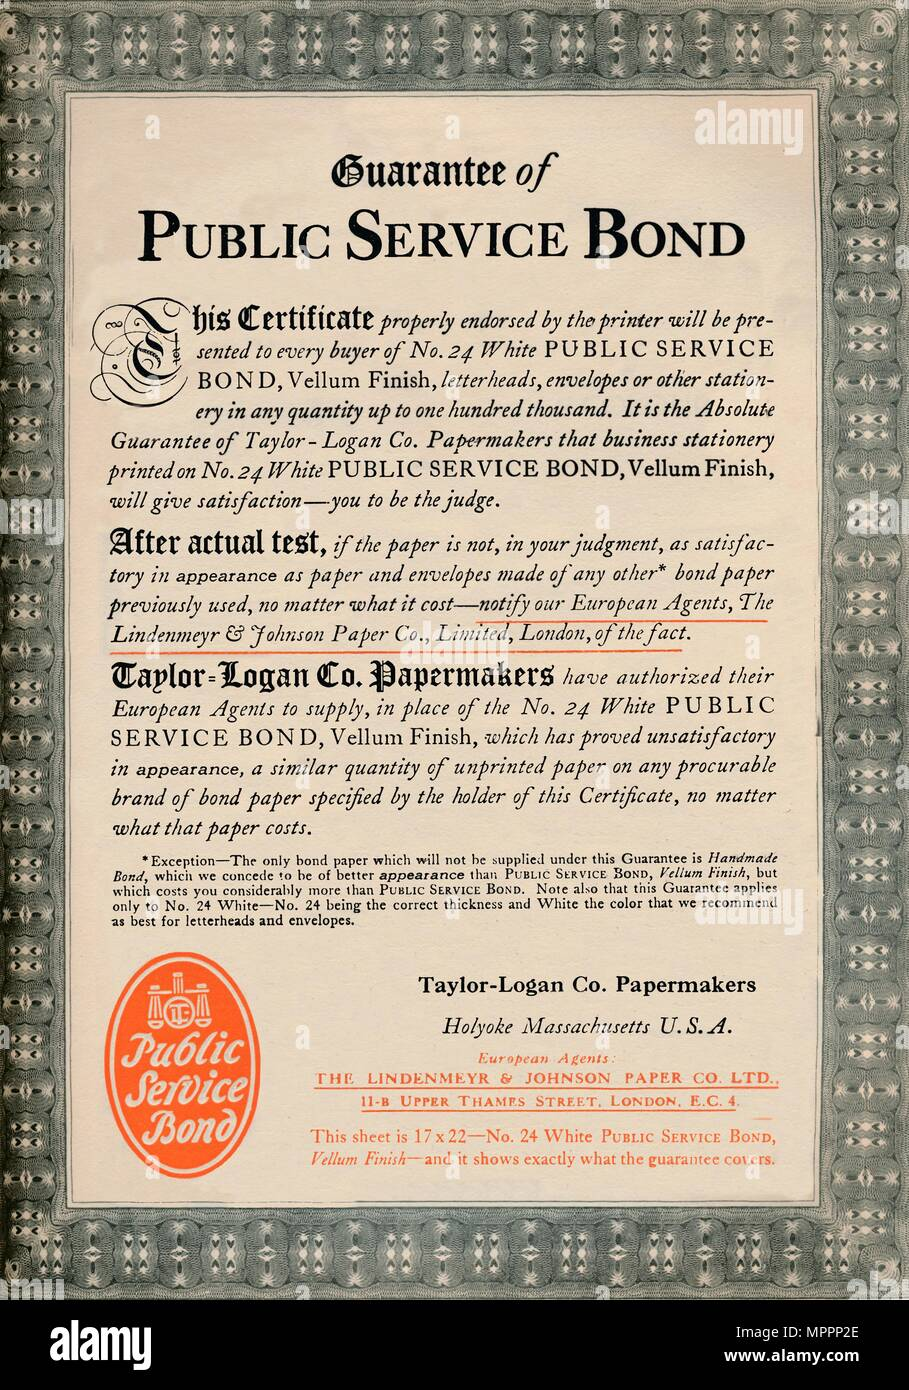 'Guarantee of Public Service Bond - Taylor-Logan Co. Papermakers advert', 1919. Artist: Unknown. - Stock Image